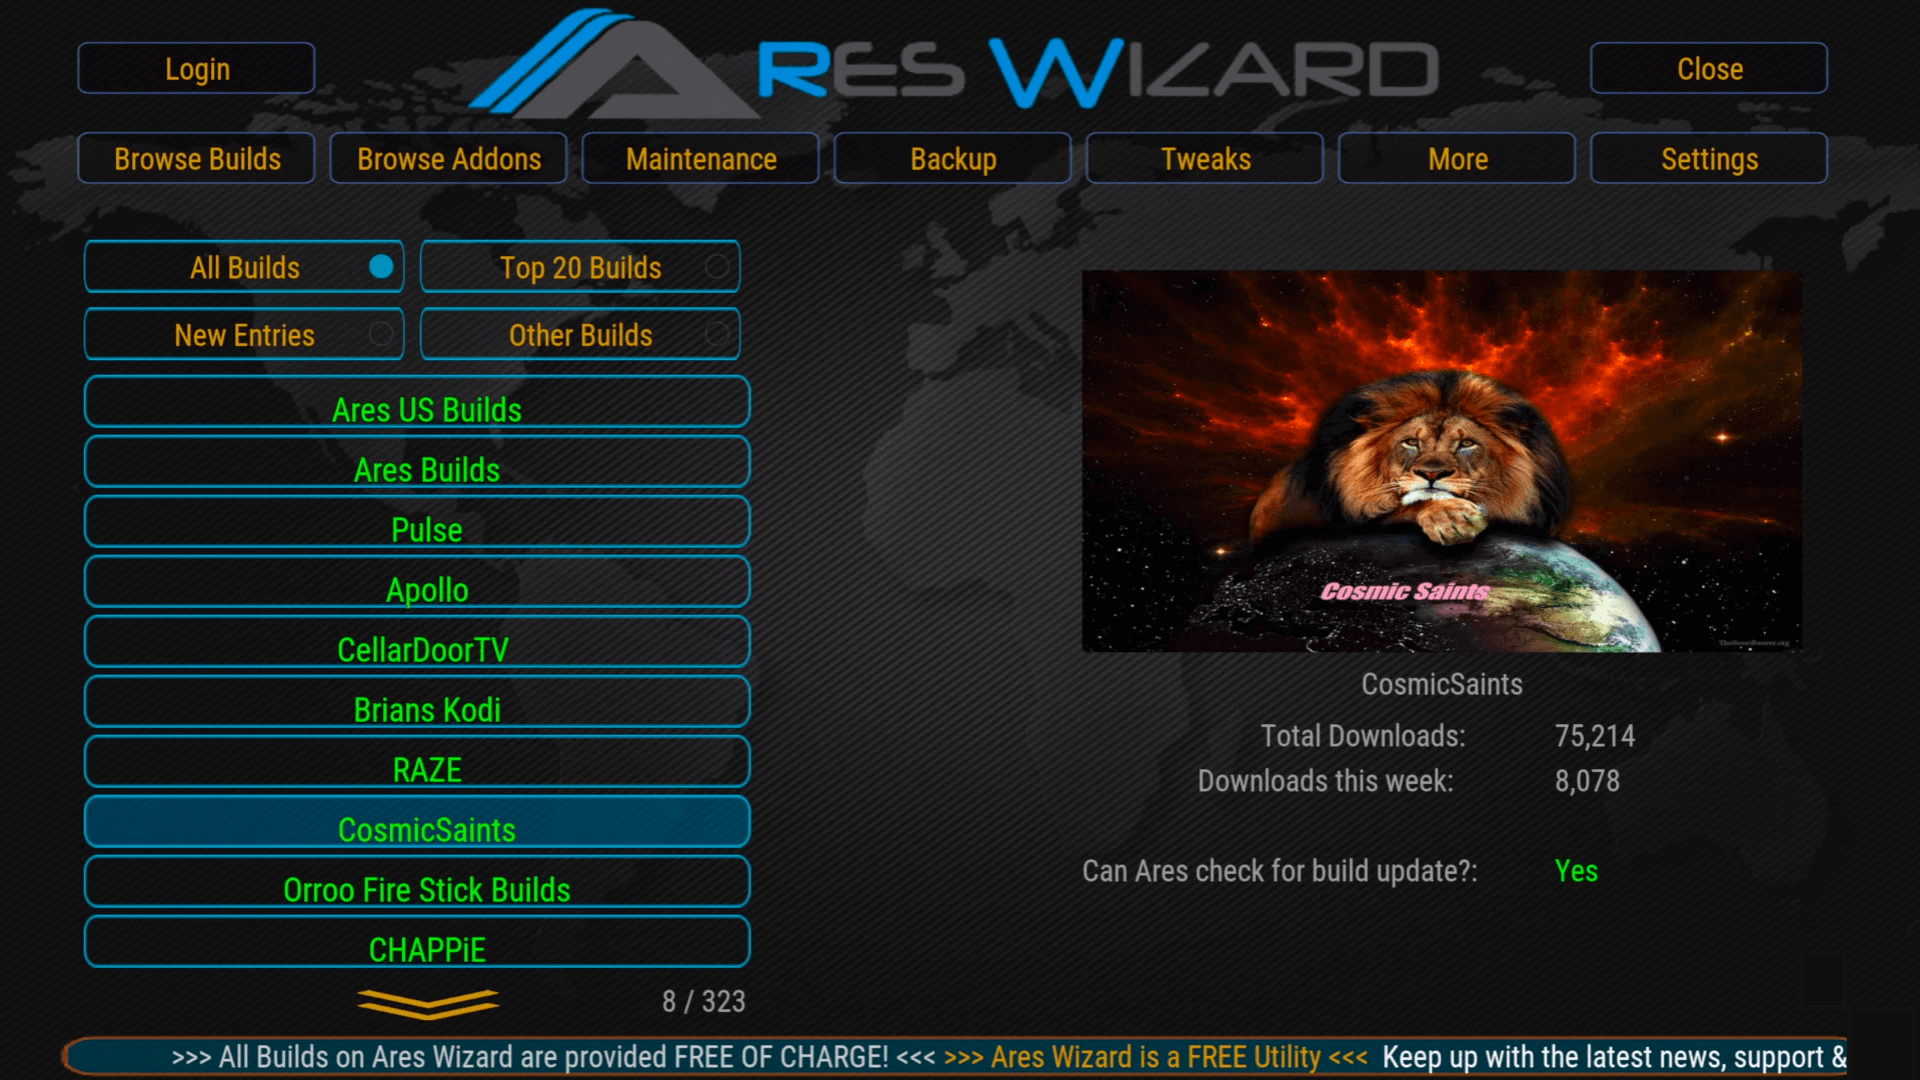 How to Install Ares Wizard on Kodi 17.6 Krypton – Best Kodi Builds